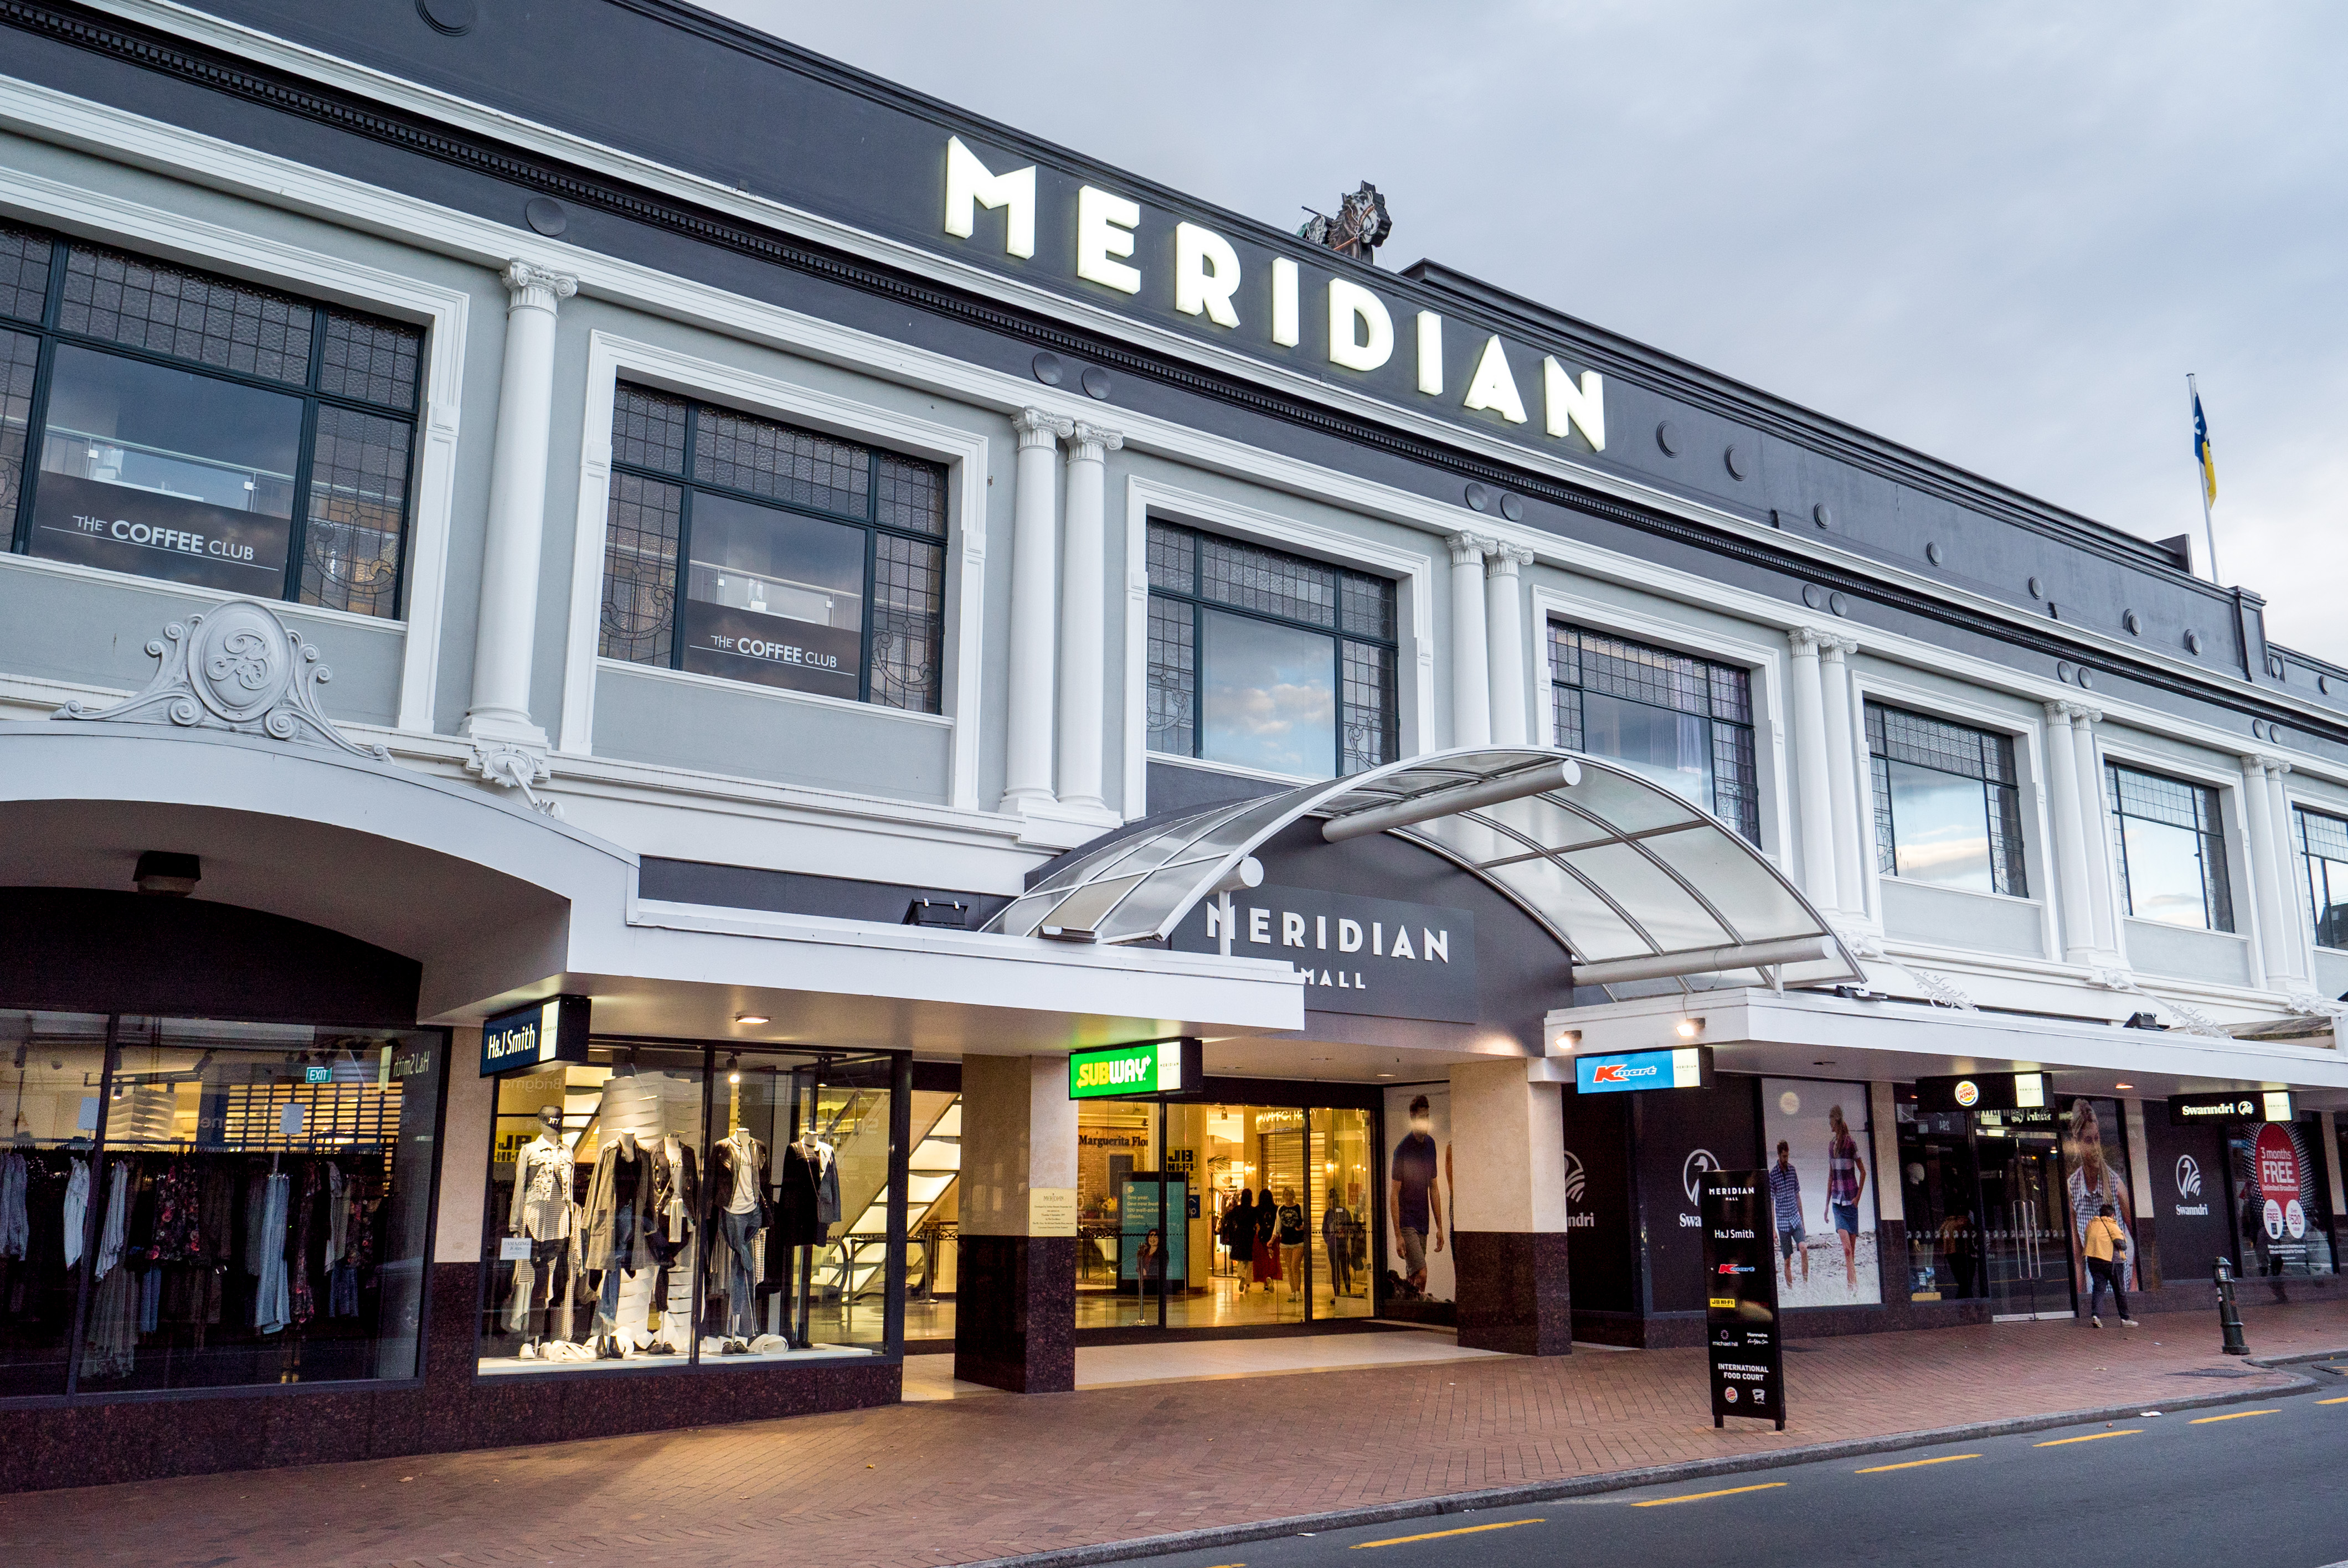 Meridian Mall in George St. Photo: ODT files